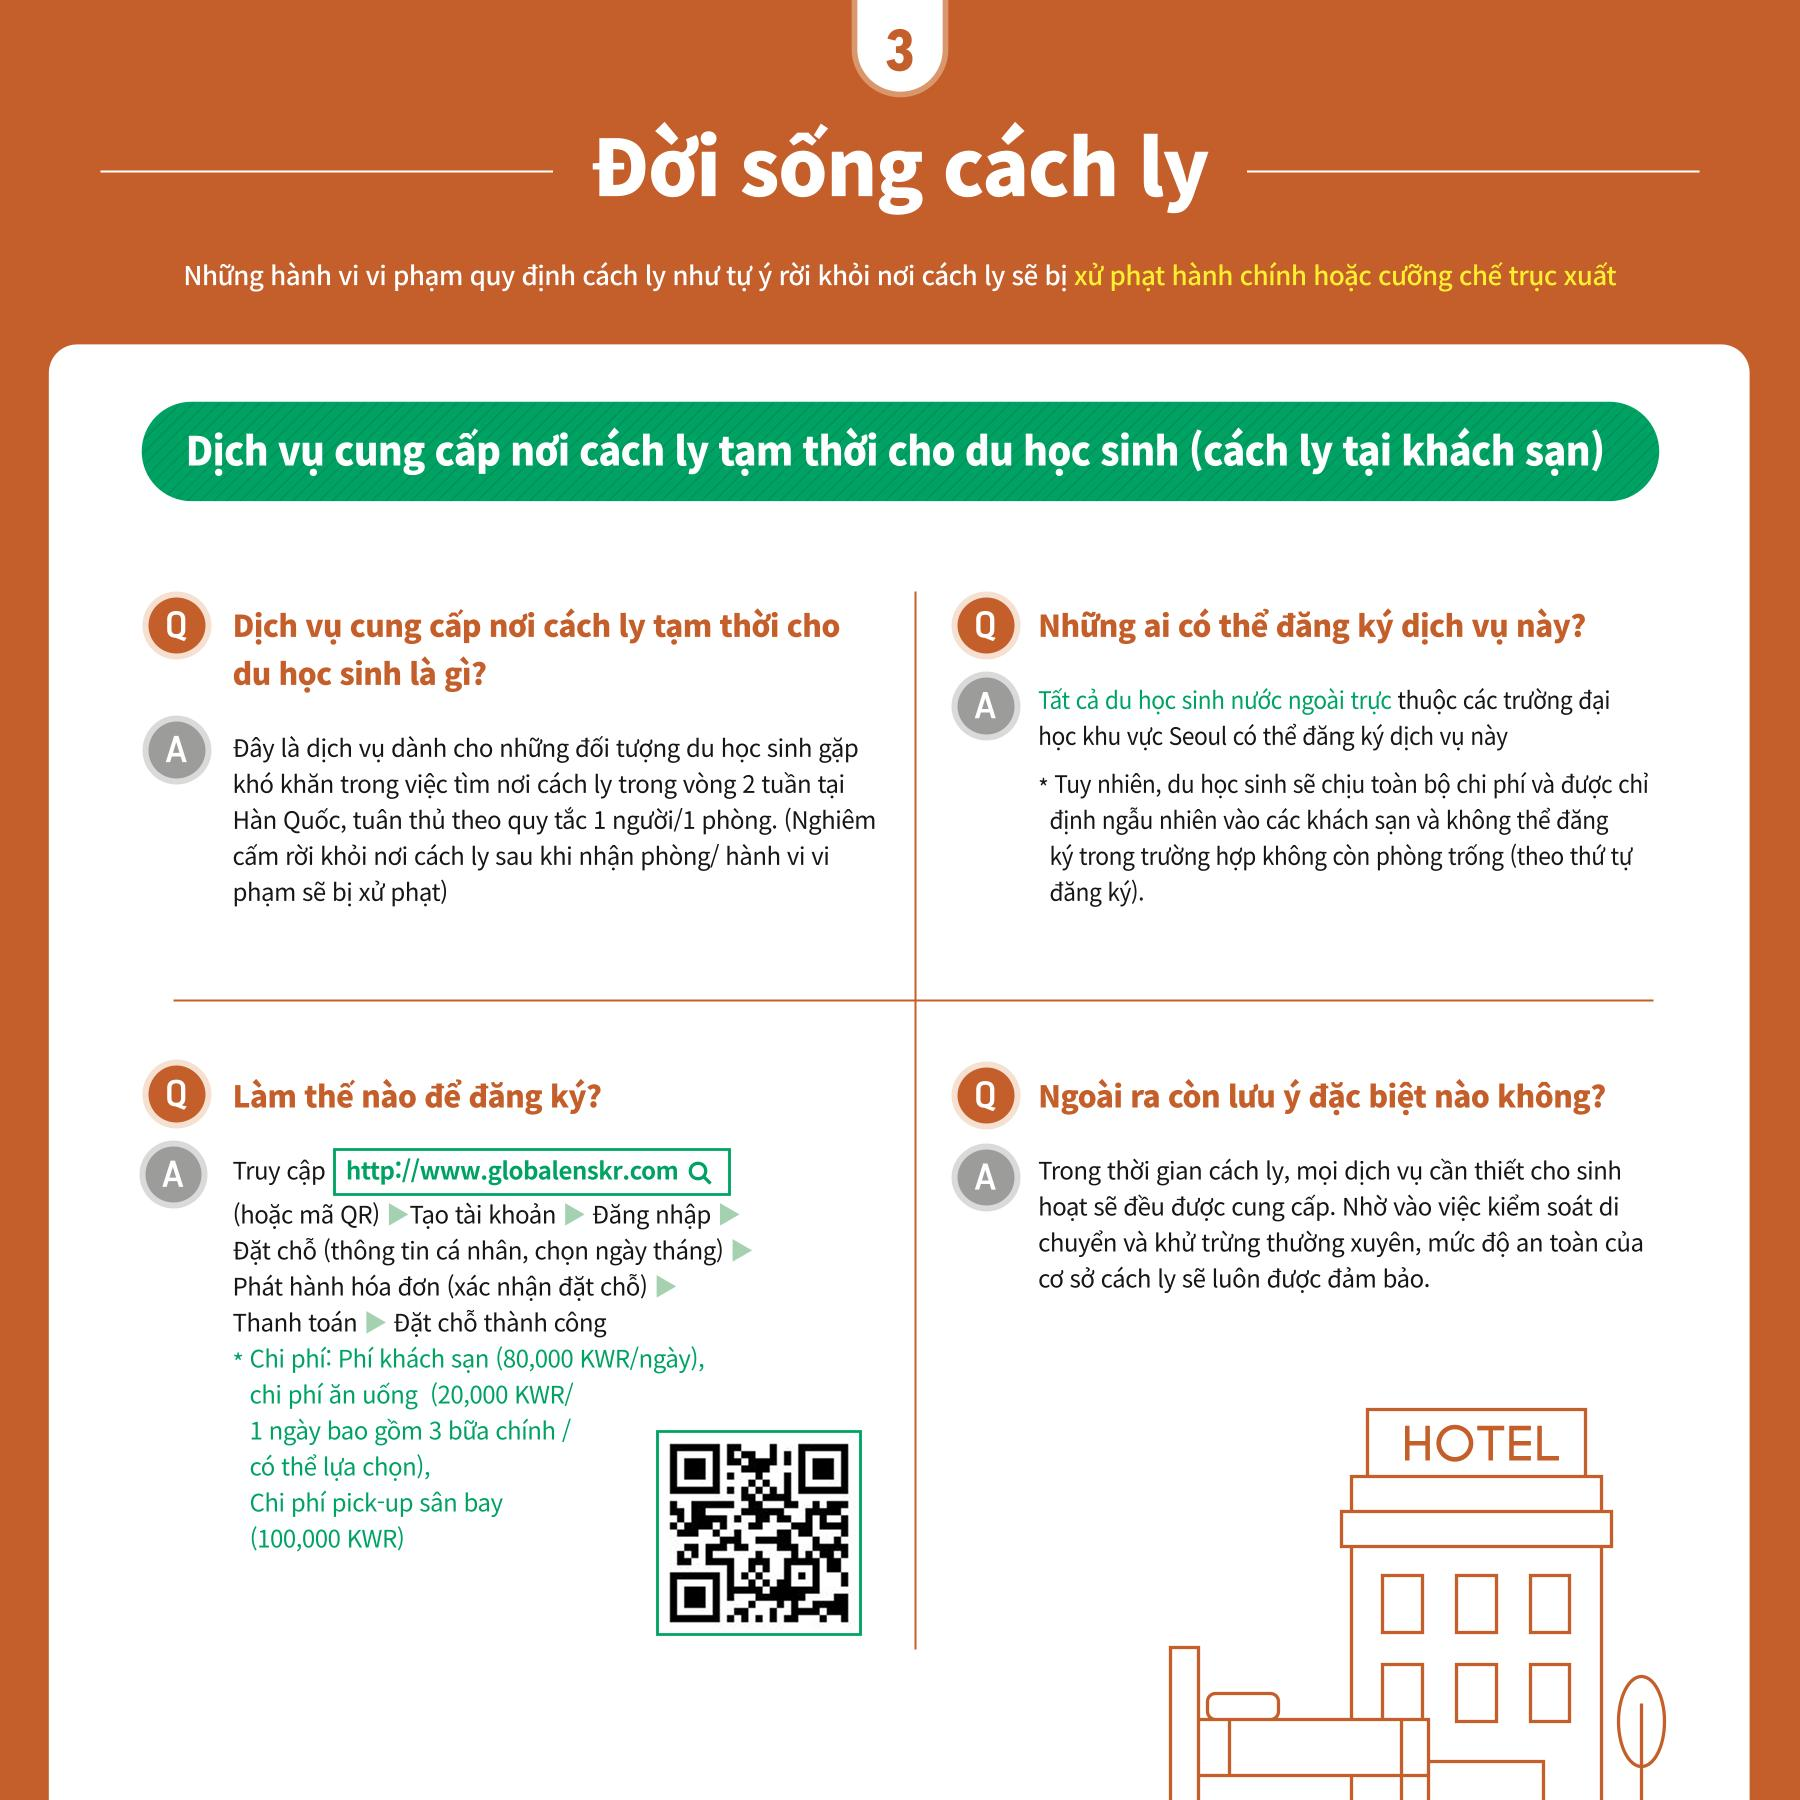 Huong dan cac quy dinh cach ly danh cho du hoc sinh pages 7